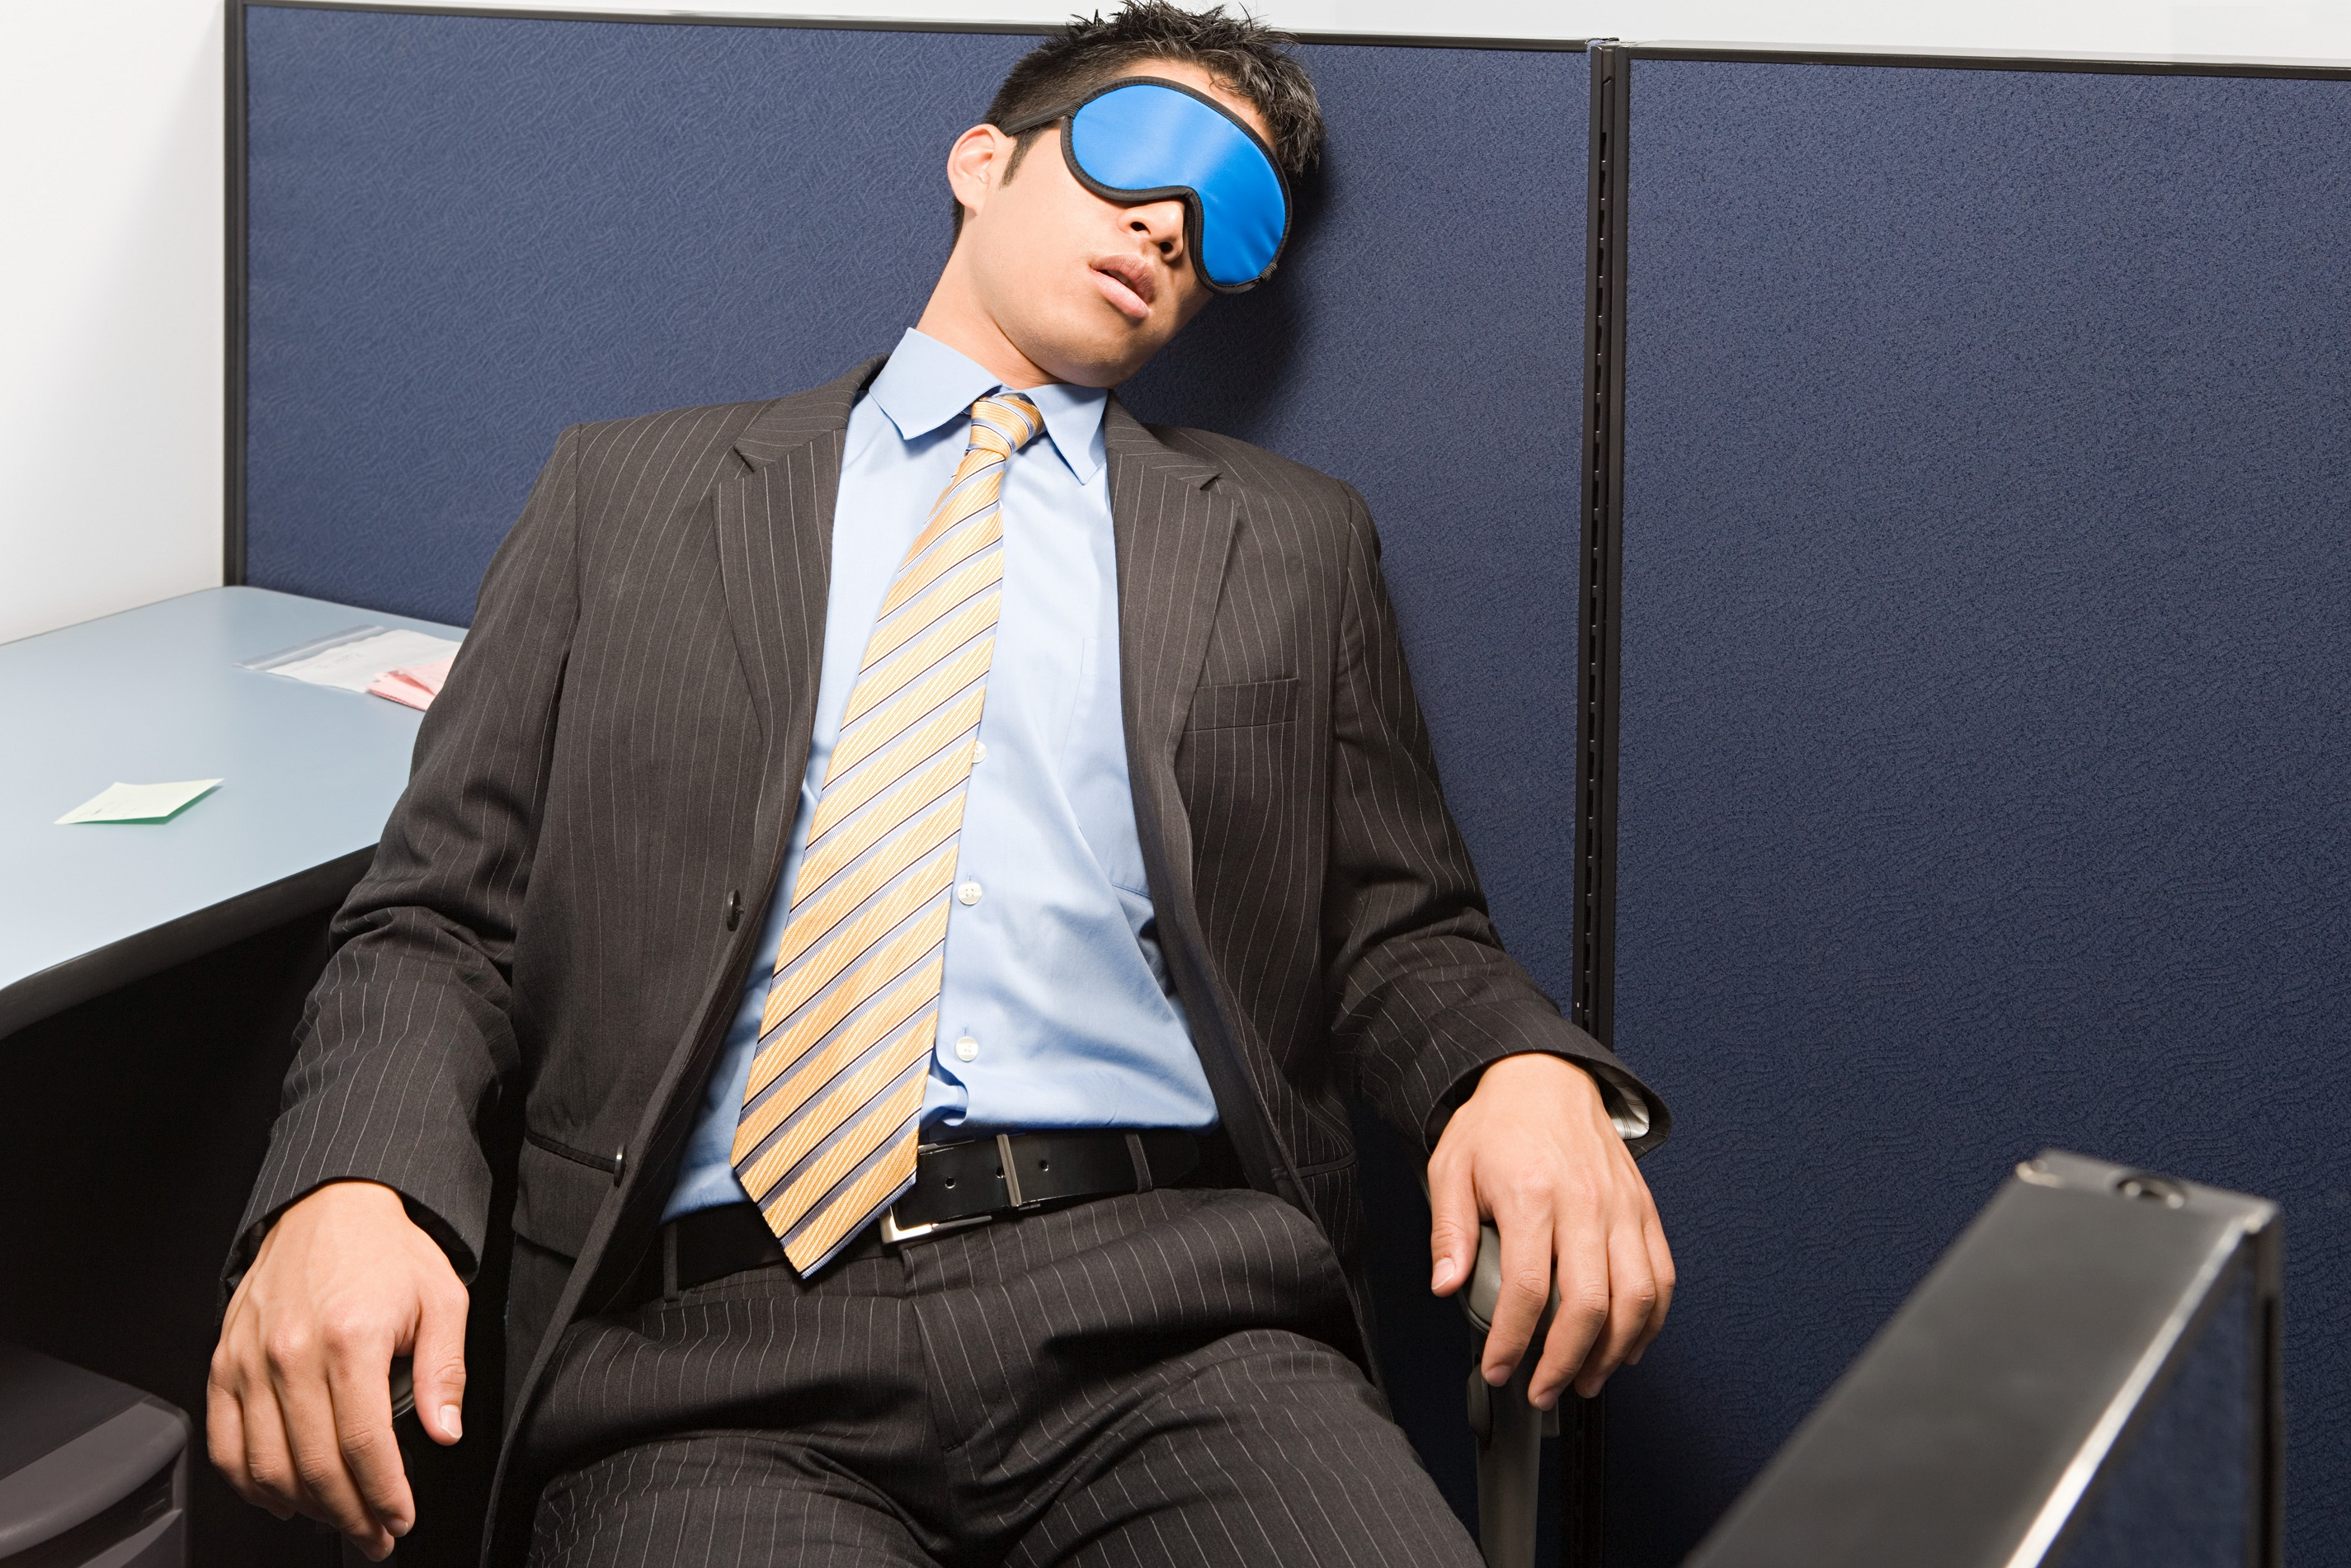 Sleeping in the office with a face mask